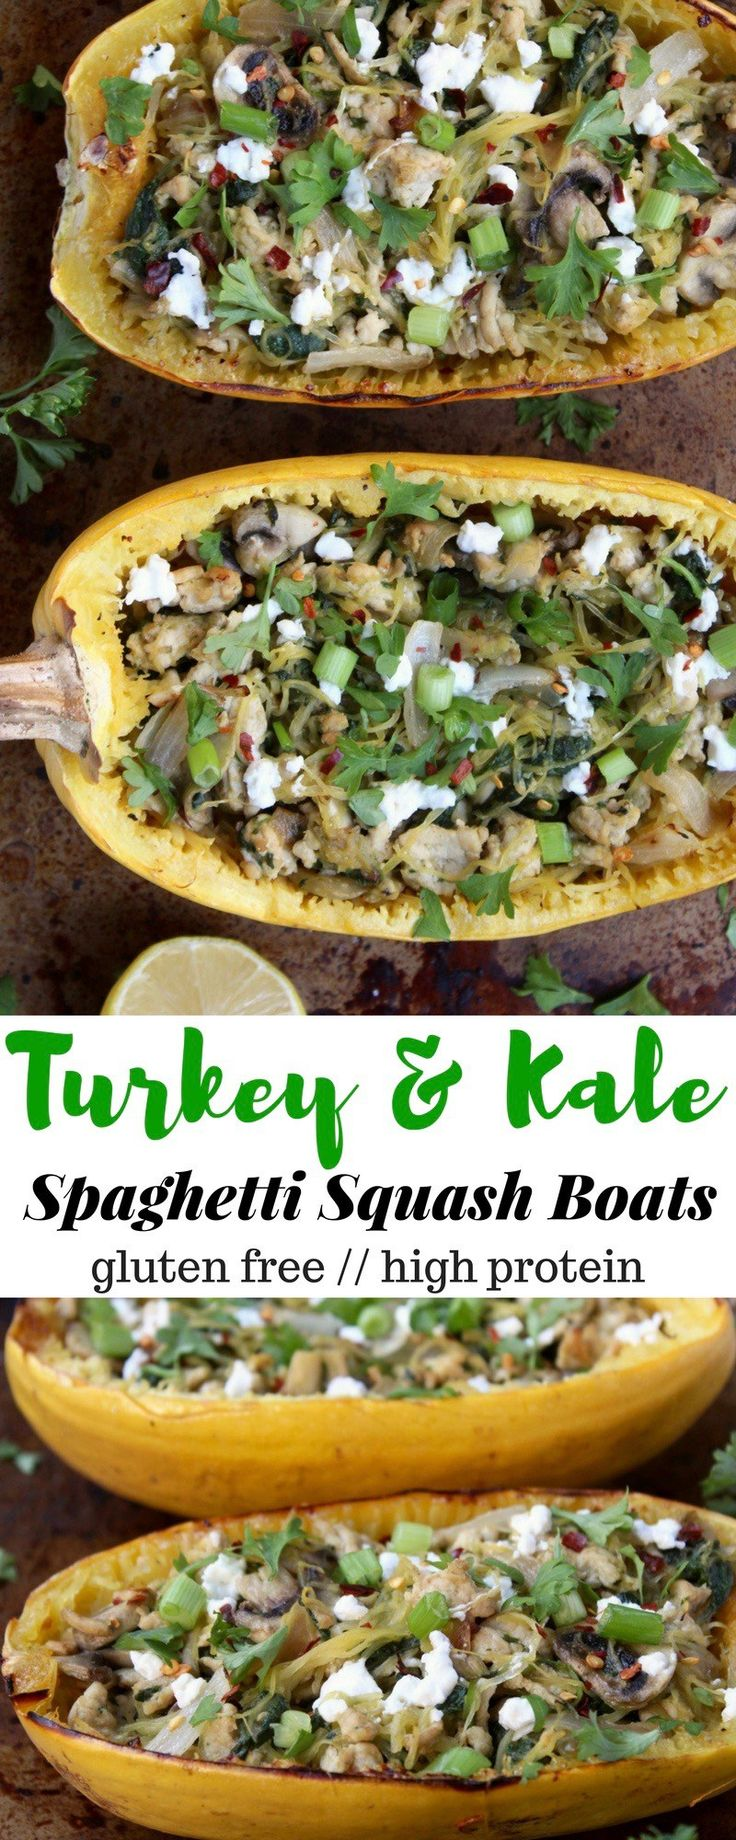 An easyweekdaymeal, theseTurkey & Kale Spaghetti Squash Boats pack veggies, healthy carbs and fats, and lots of proteinfor a satisfying and well balanced dinner - Eat the Gains